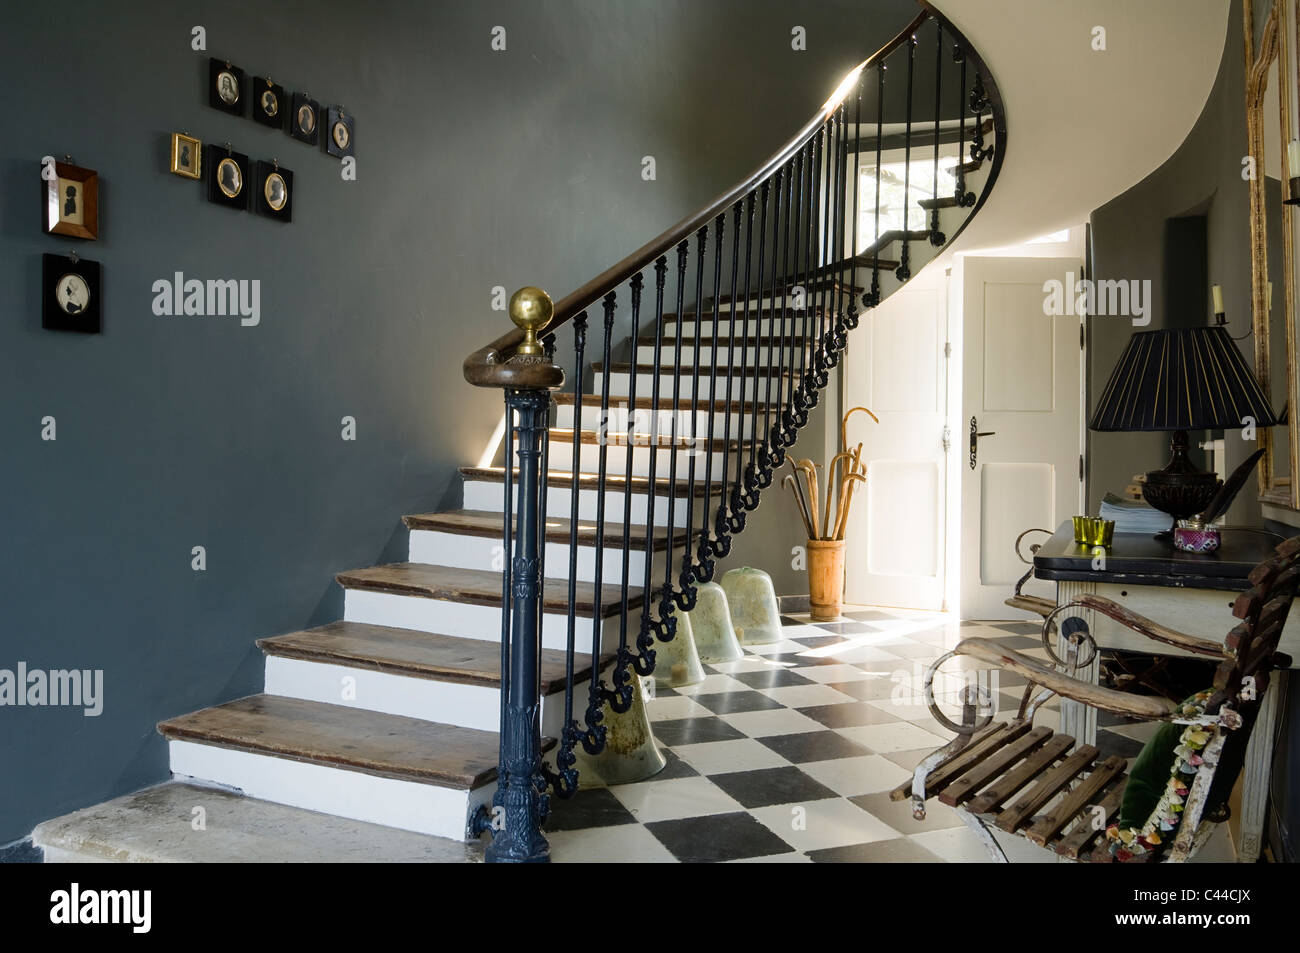 Hallway With Checked Floor Tiles, Oak Wood Staircase With Wrought Iron  Balustrades And Cameos On Wall.